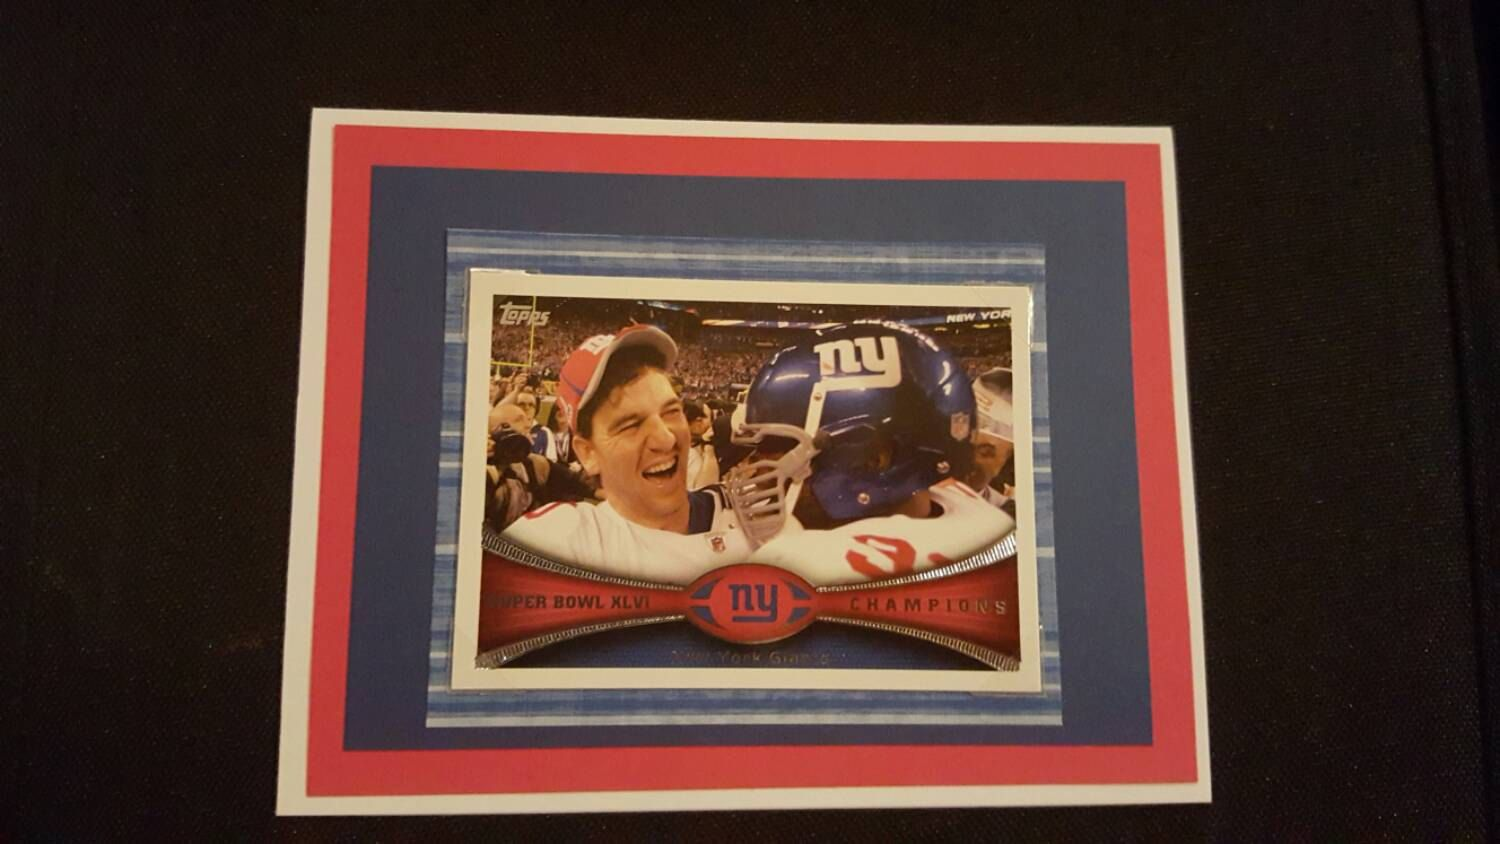 New York Giants Birthday Card With Eli Manning Or Odell Beckman Jr